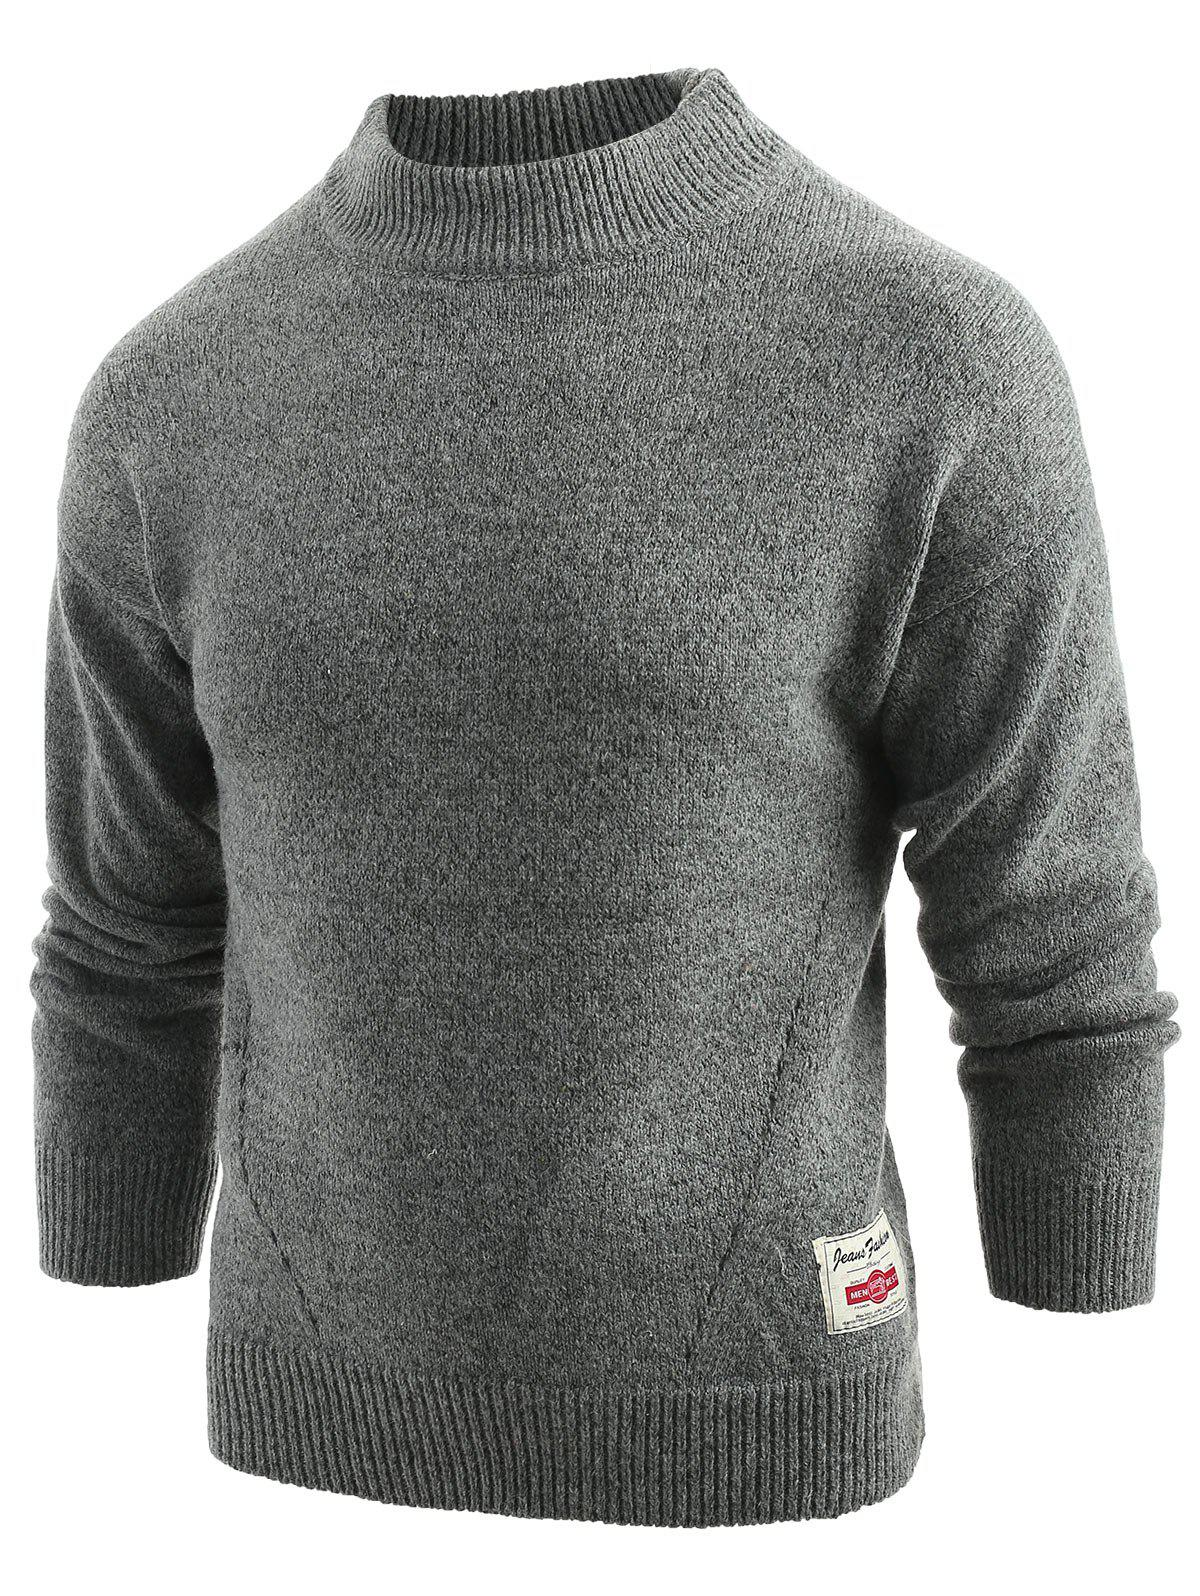 Best Long Sleeve Panel Pullover Sweater